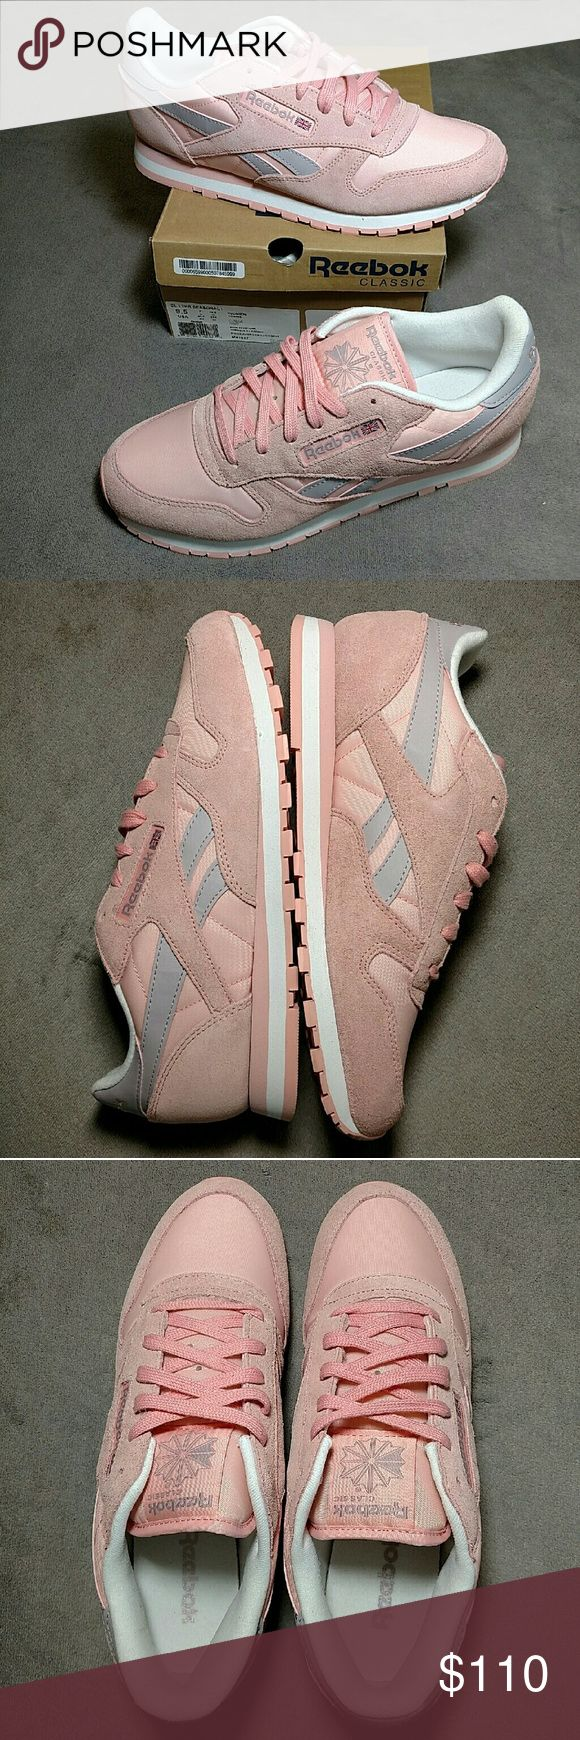 """Reebok Classic Leather Seasonal size 9.5 FOR SALE: Reebok Classic Leather Seasonal 1 in women's US 9.5 (UK 7, EUR 40.5), which is equivalent to a men's US 8. The colorway is pink, """"lavender luck"""", and white. This shoe is totally brand new with original"""